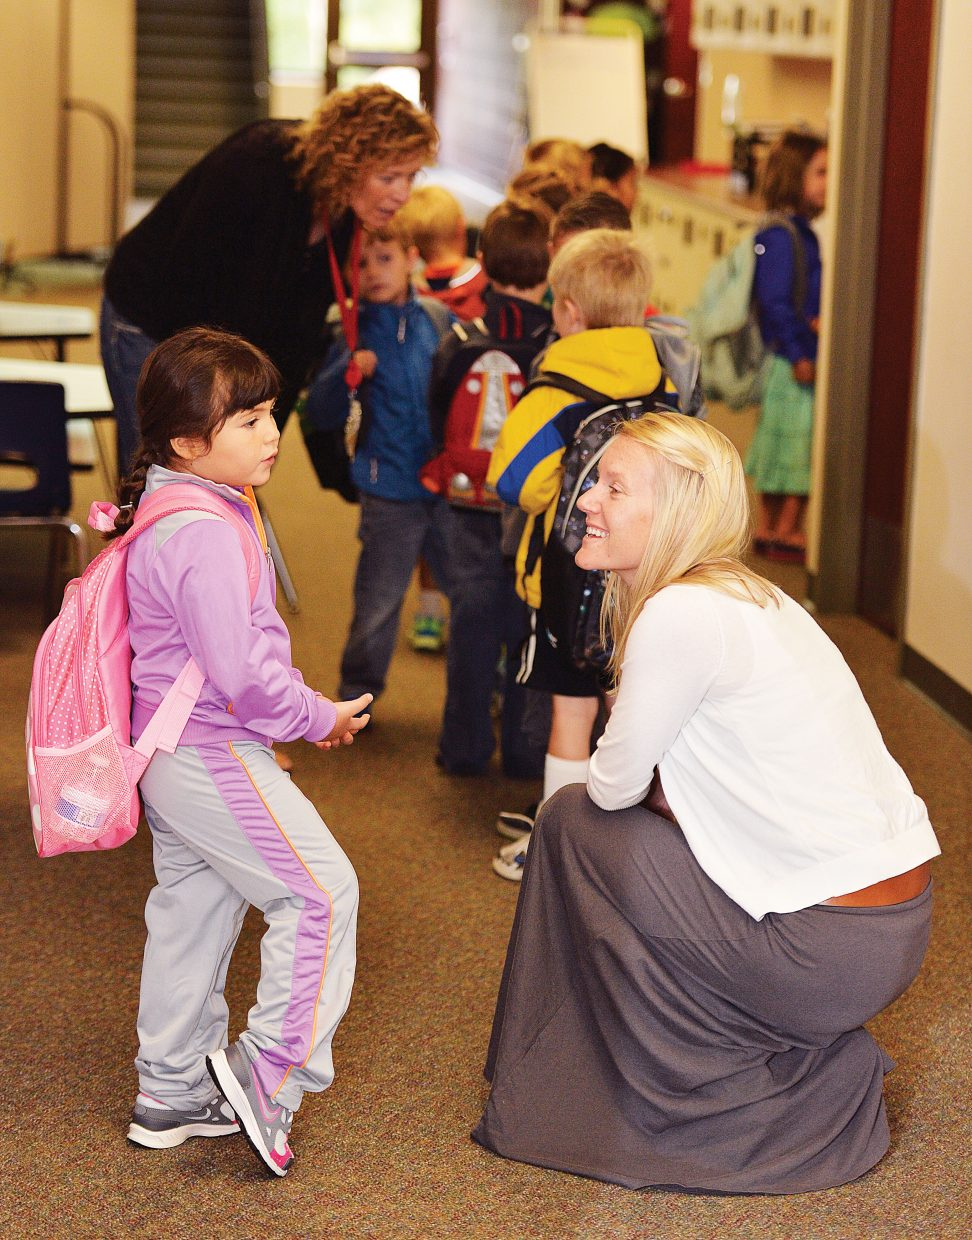 Kindergartner Remas Alnajdawi talks with counselor Emily Brust while waiting to go into her first day of class at Soda Creek Elementary School. While most of the school district began classes Tuesday, kindergartners didn't start classes until Wednesday.